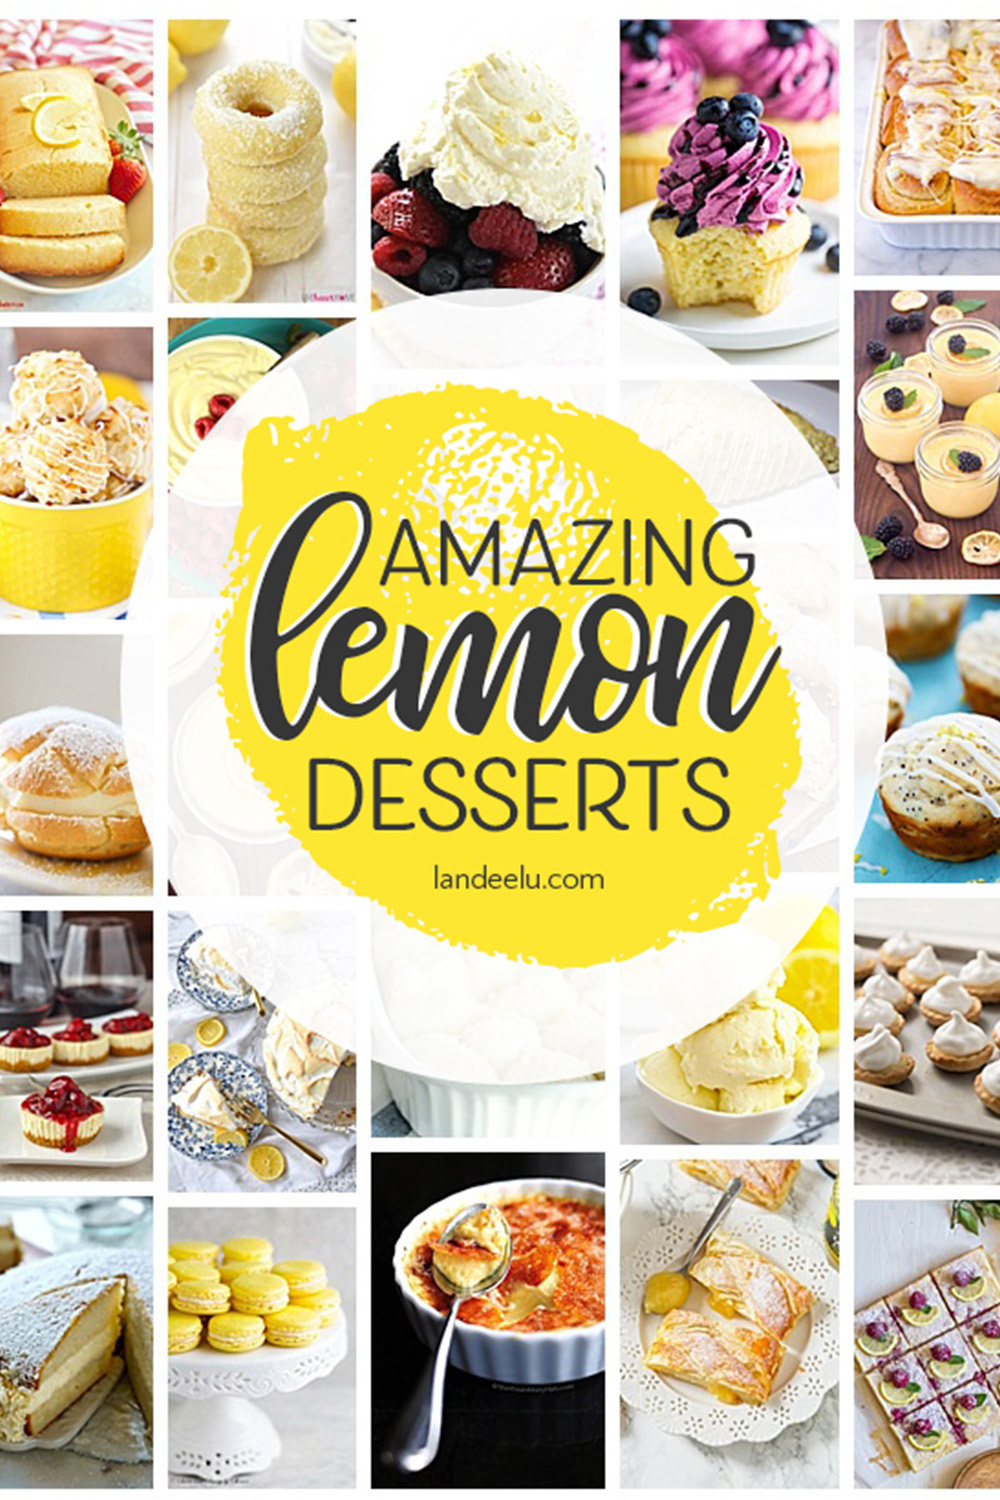 These lemon desserts look so yummy! Can't wait to try the lemon cheesecake! #lemondesserts #lemon #lemonbars #lemoncake